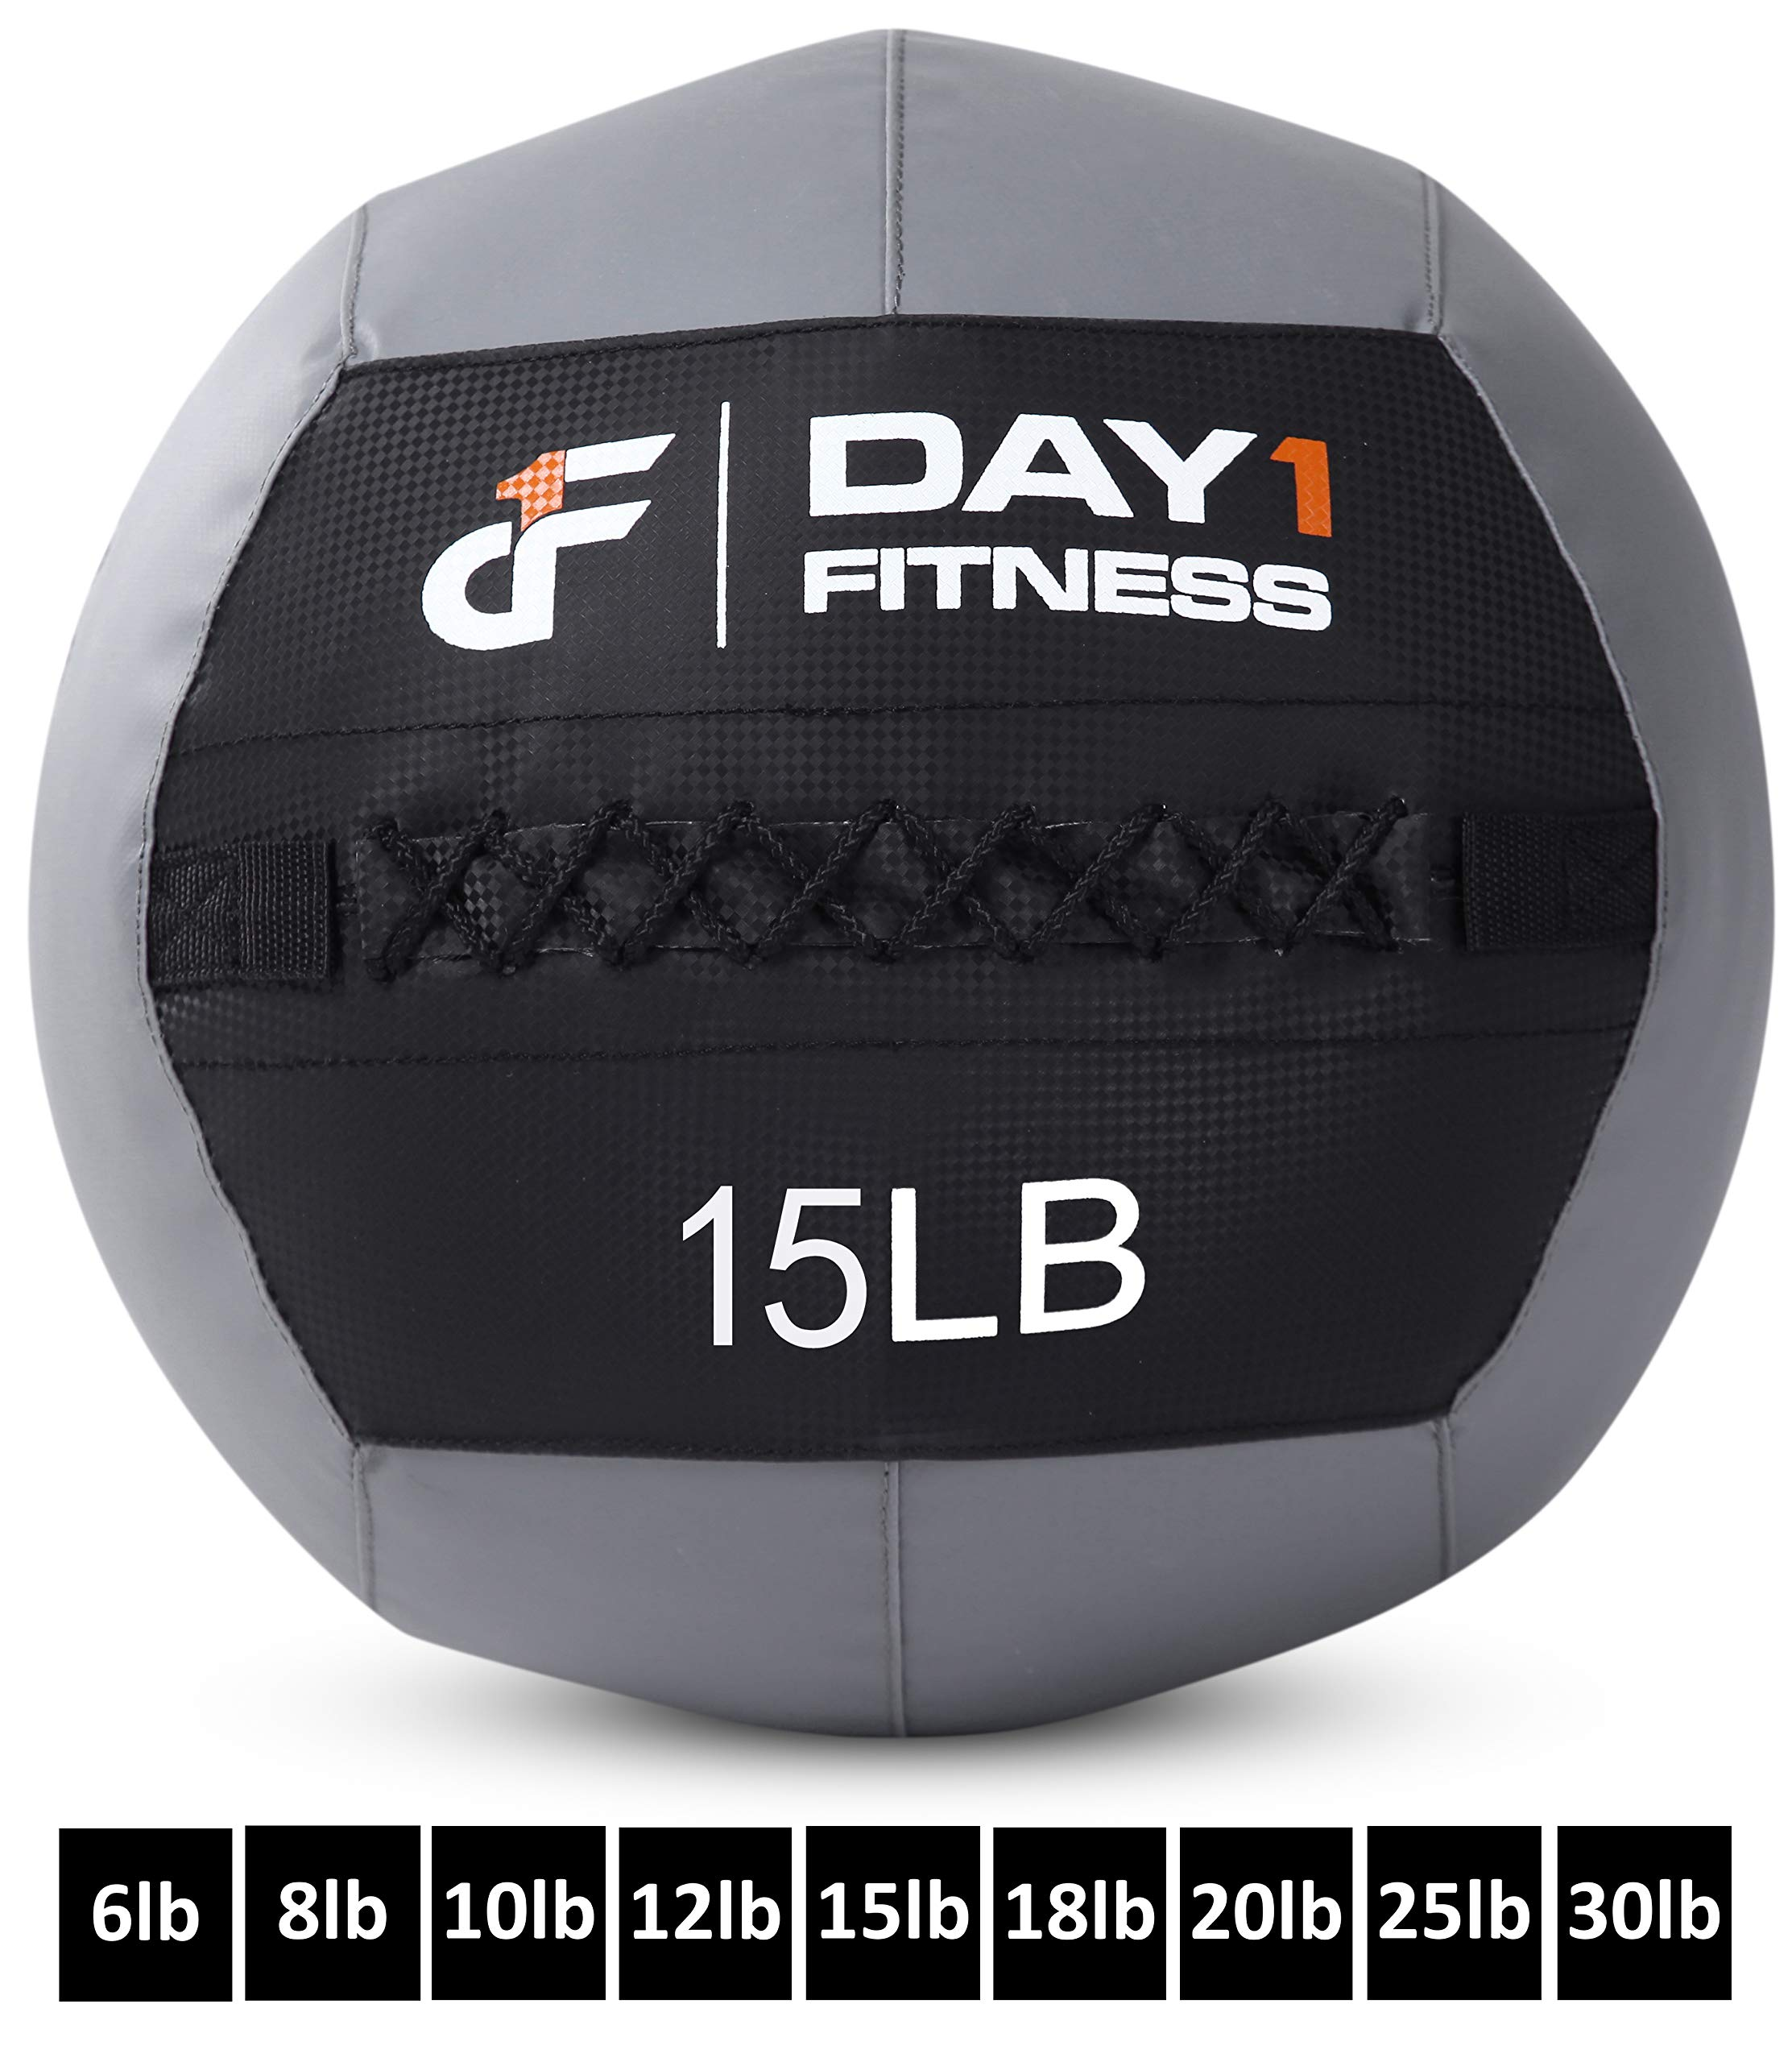 Day 1 Fitness Soft Wall Medicine Ball 15 Pounds - for Exercise, Physical Therapy, Rehab, Core Strength, Large Durable Balls for TRX, Floor Exercises, Stretching by Day 1 Fitness